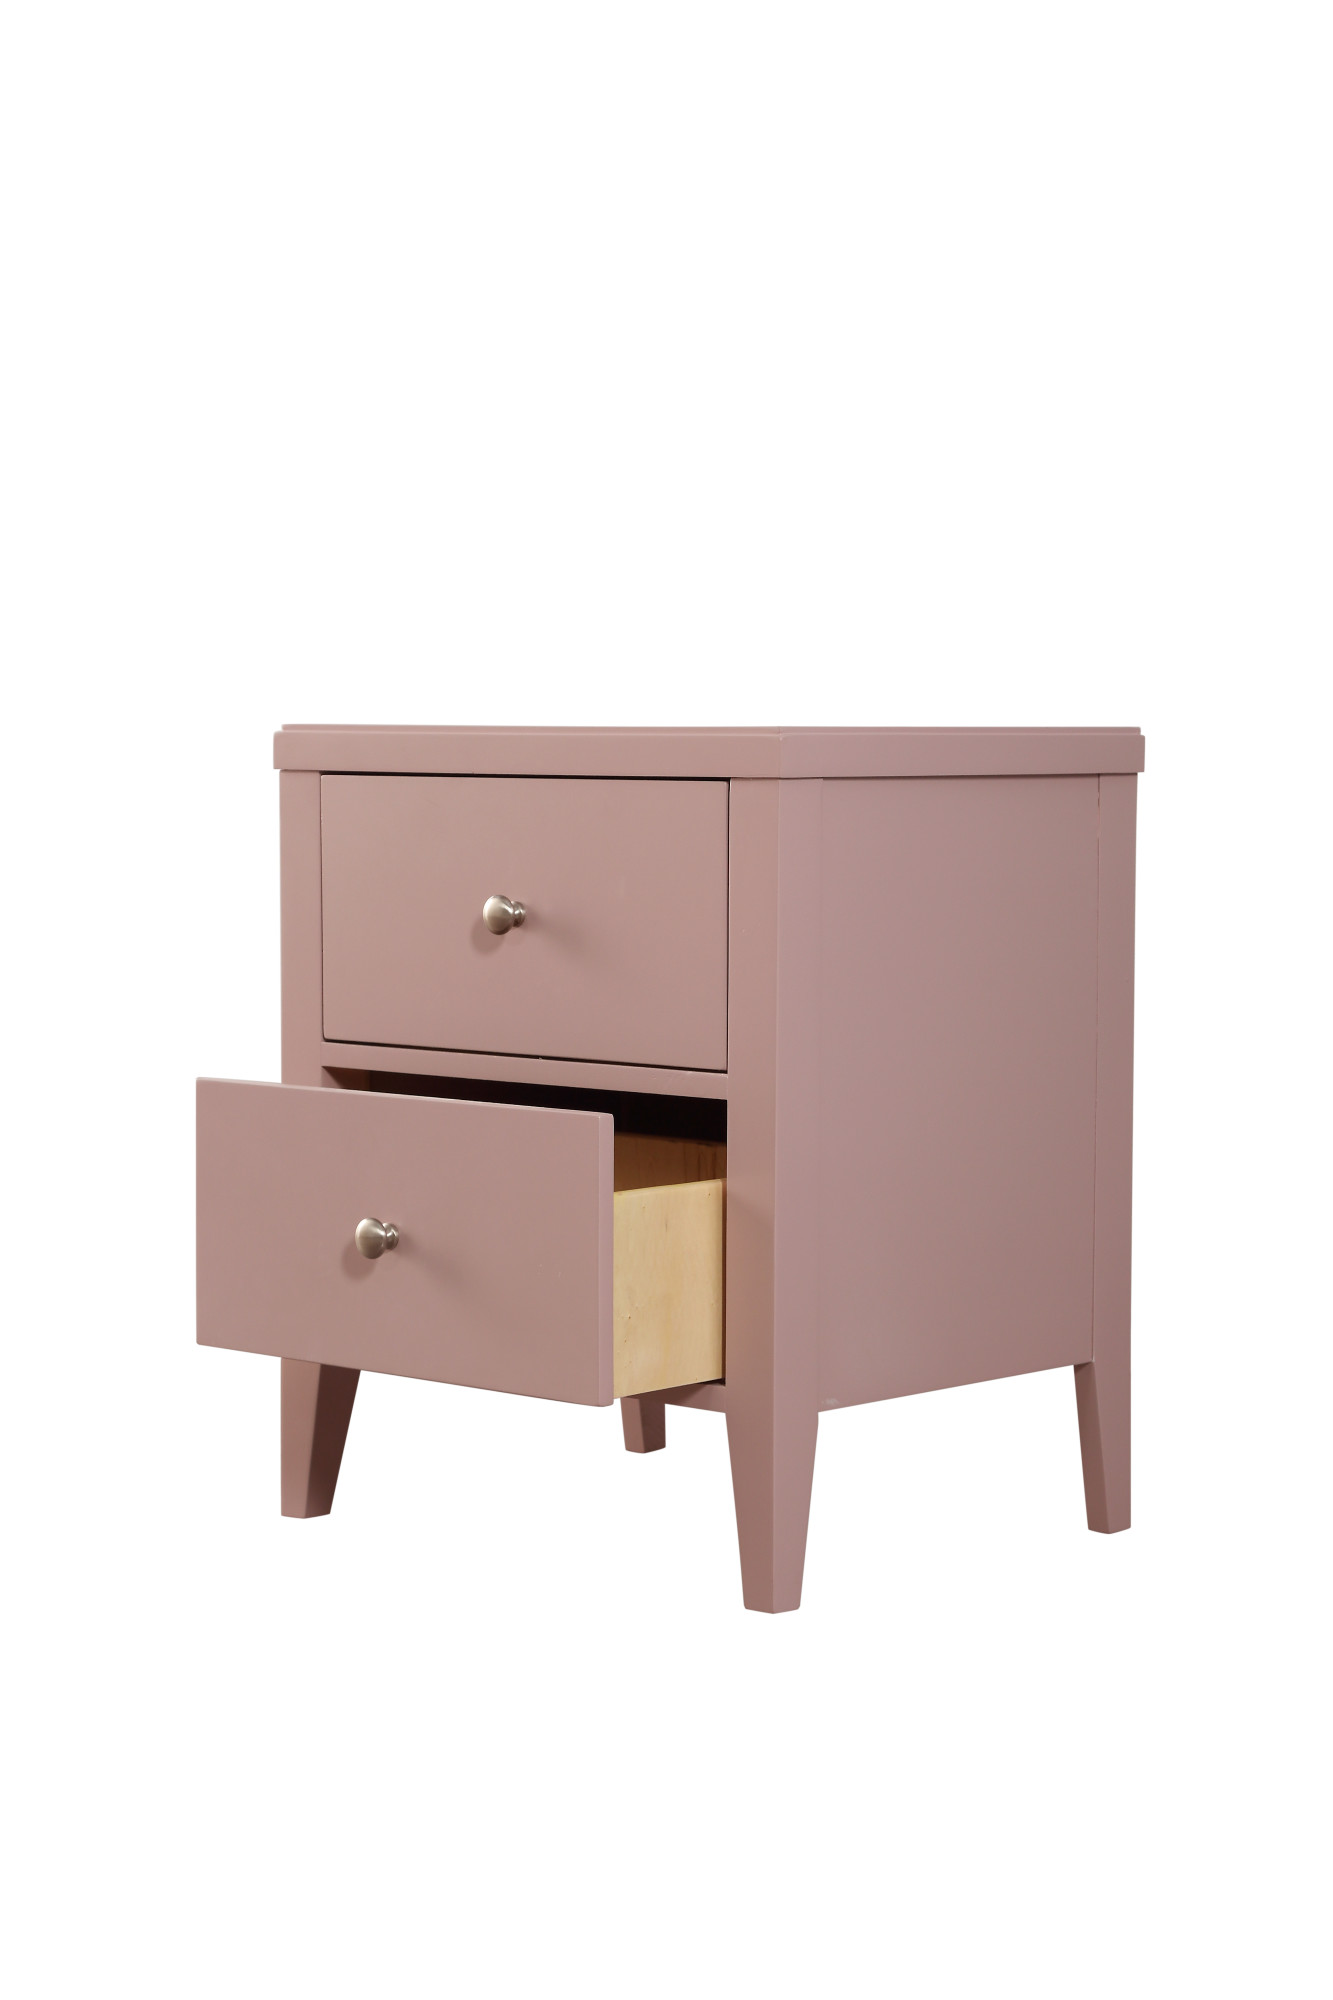 Emerald Home Home Decor Iii Pink Nightstand With Angled Wood Legs And Brushed Nickel Hardware 2 Drawer Walmart Com Walmart Com